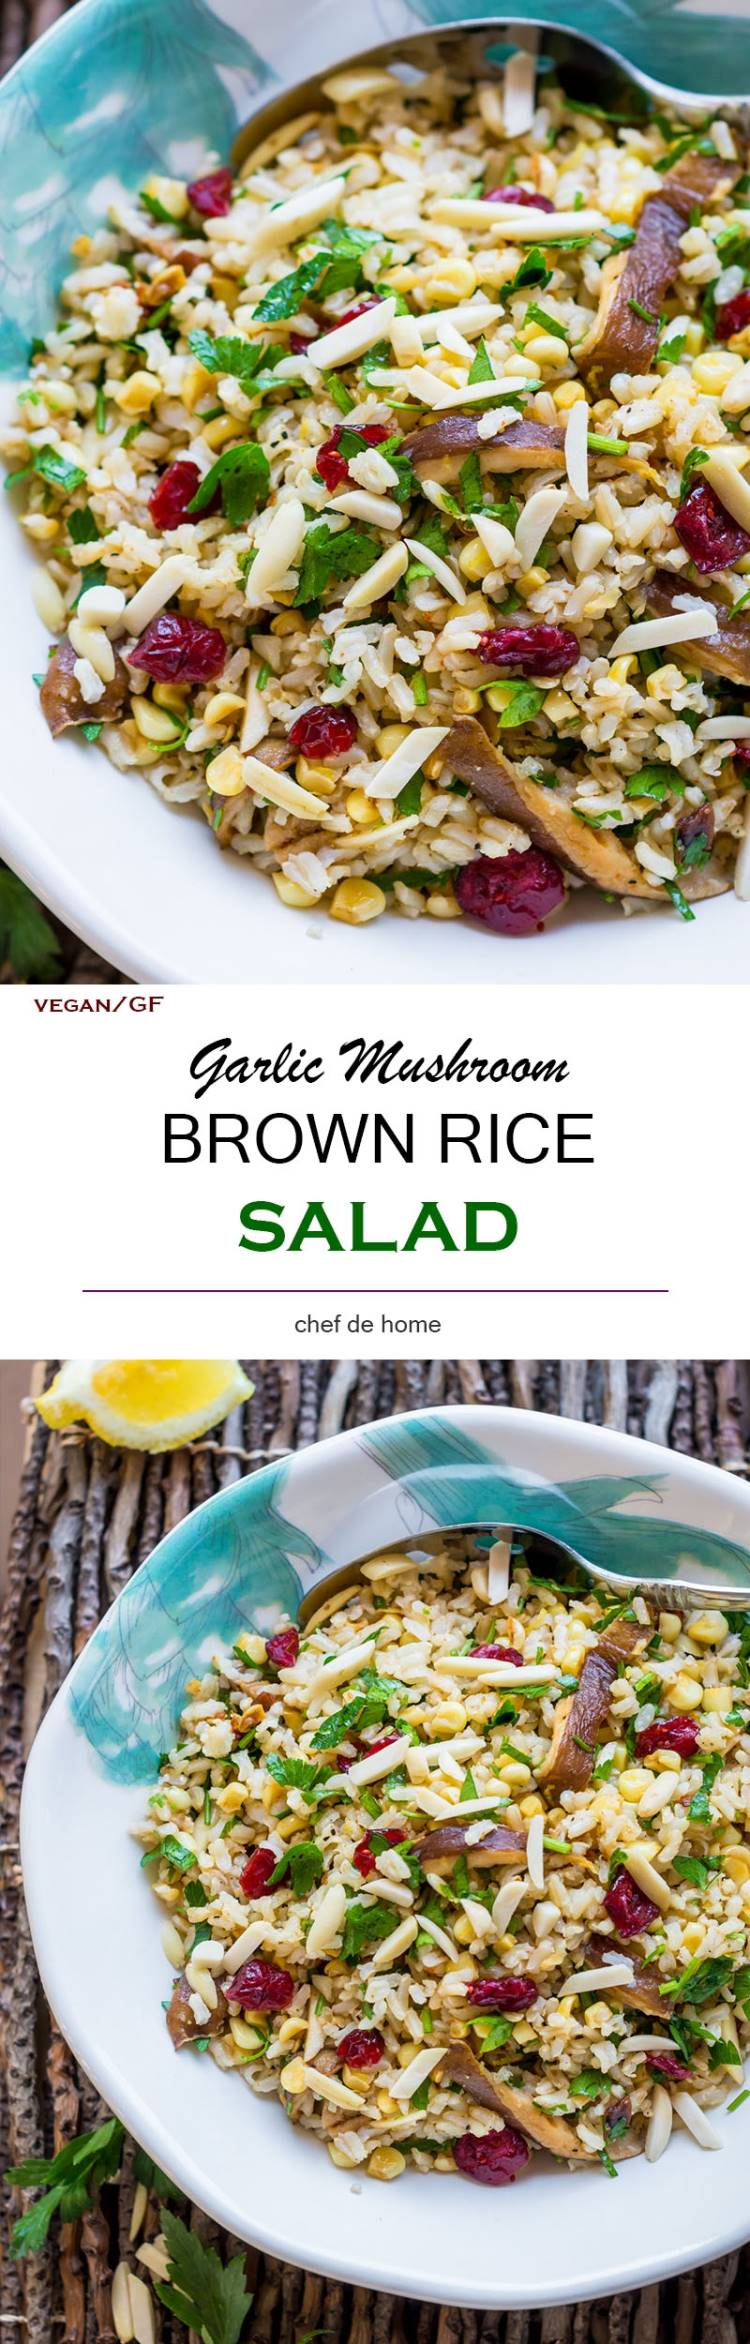 Brown Rice Salad with Mushroom corn and lemony dressing | chefdehome.com